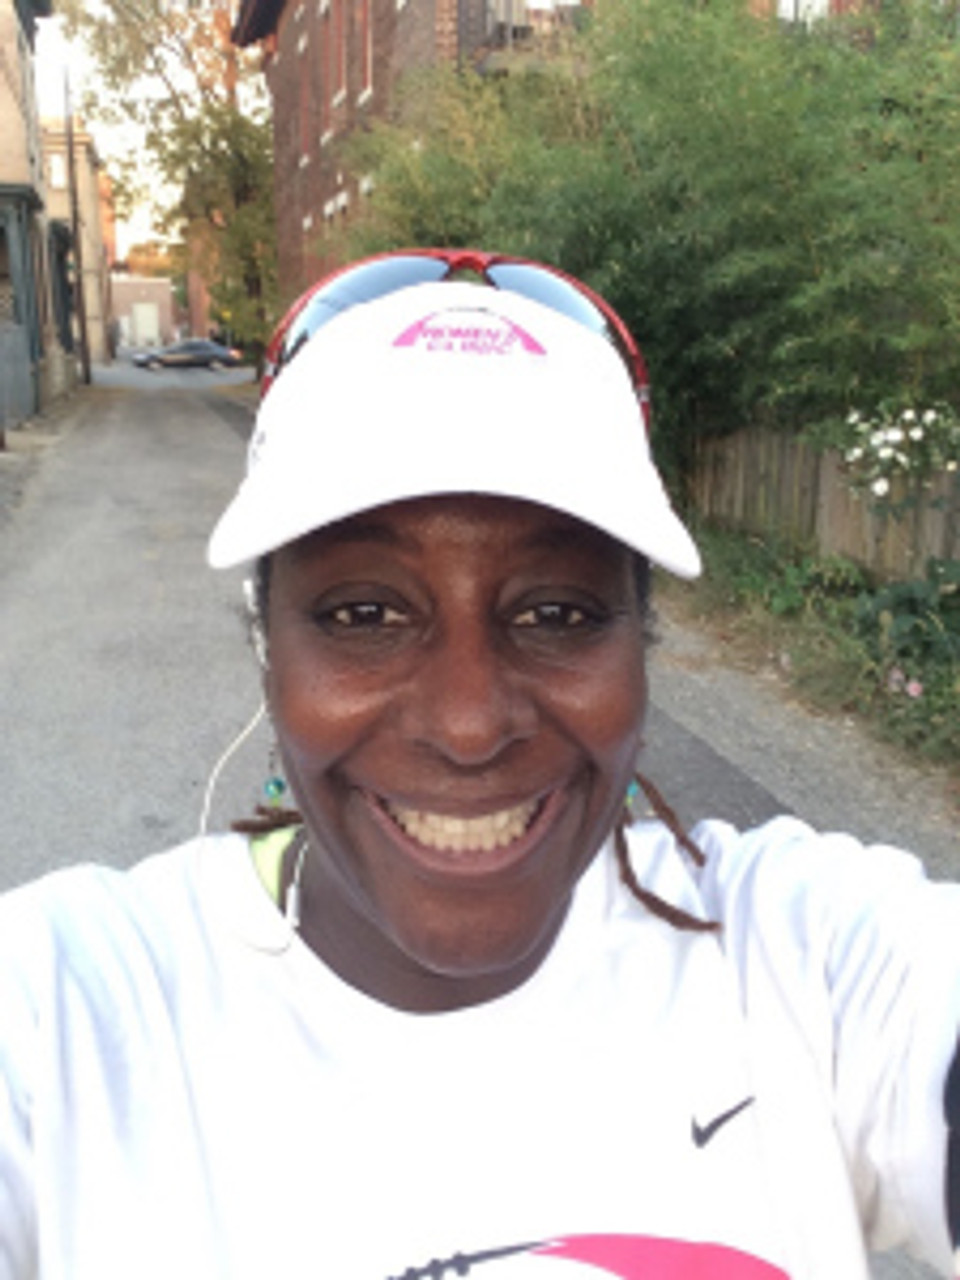 """Running is healthy for mind & body. It sets """"The Struggle"""" straight."""